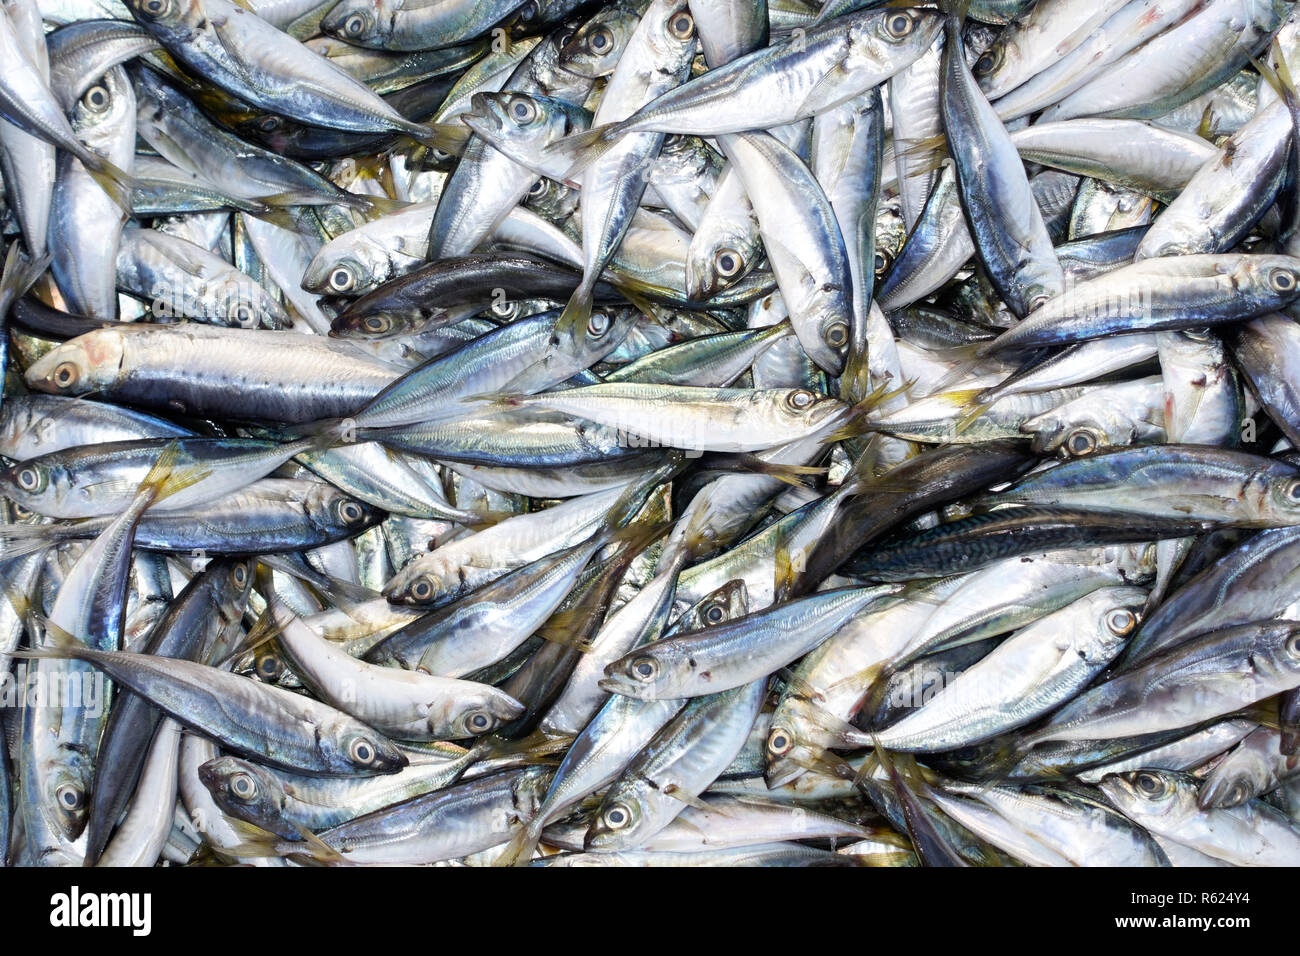 bodrum fish market Stock Photo